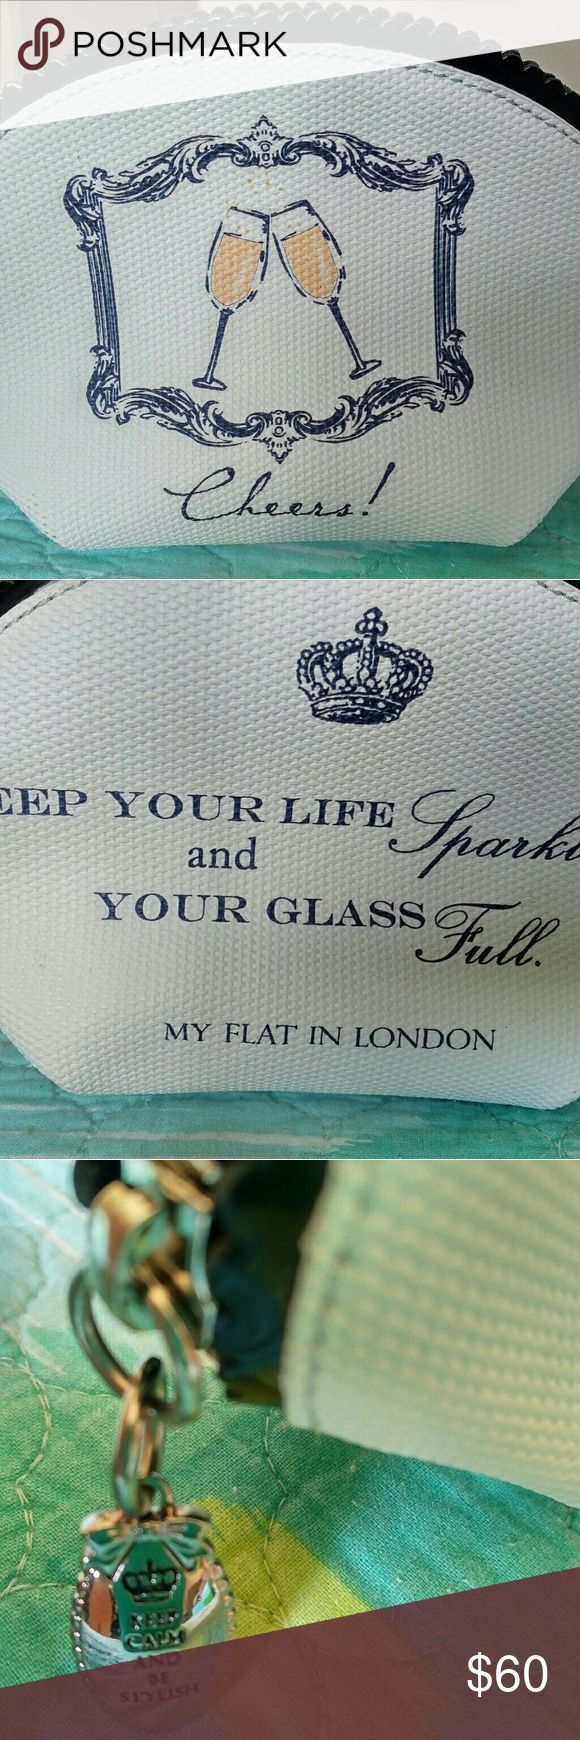 Brighton My Flat in London Cheers small bag New with tags MFIL small makeup or accessories bag.  No longer available at Brighton stores. My Flat in London Bags Cosmetic Bags & Cases